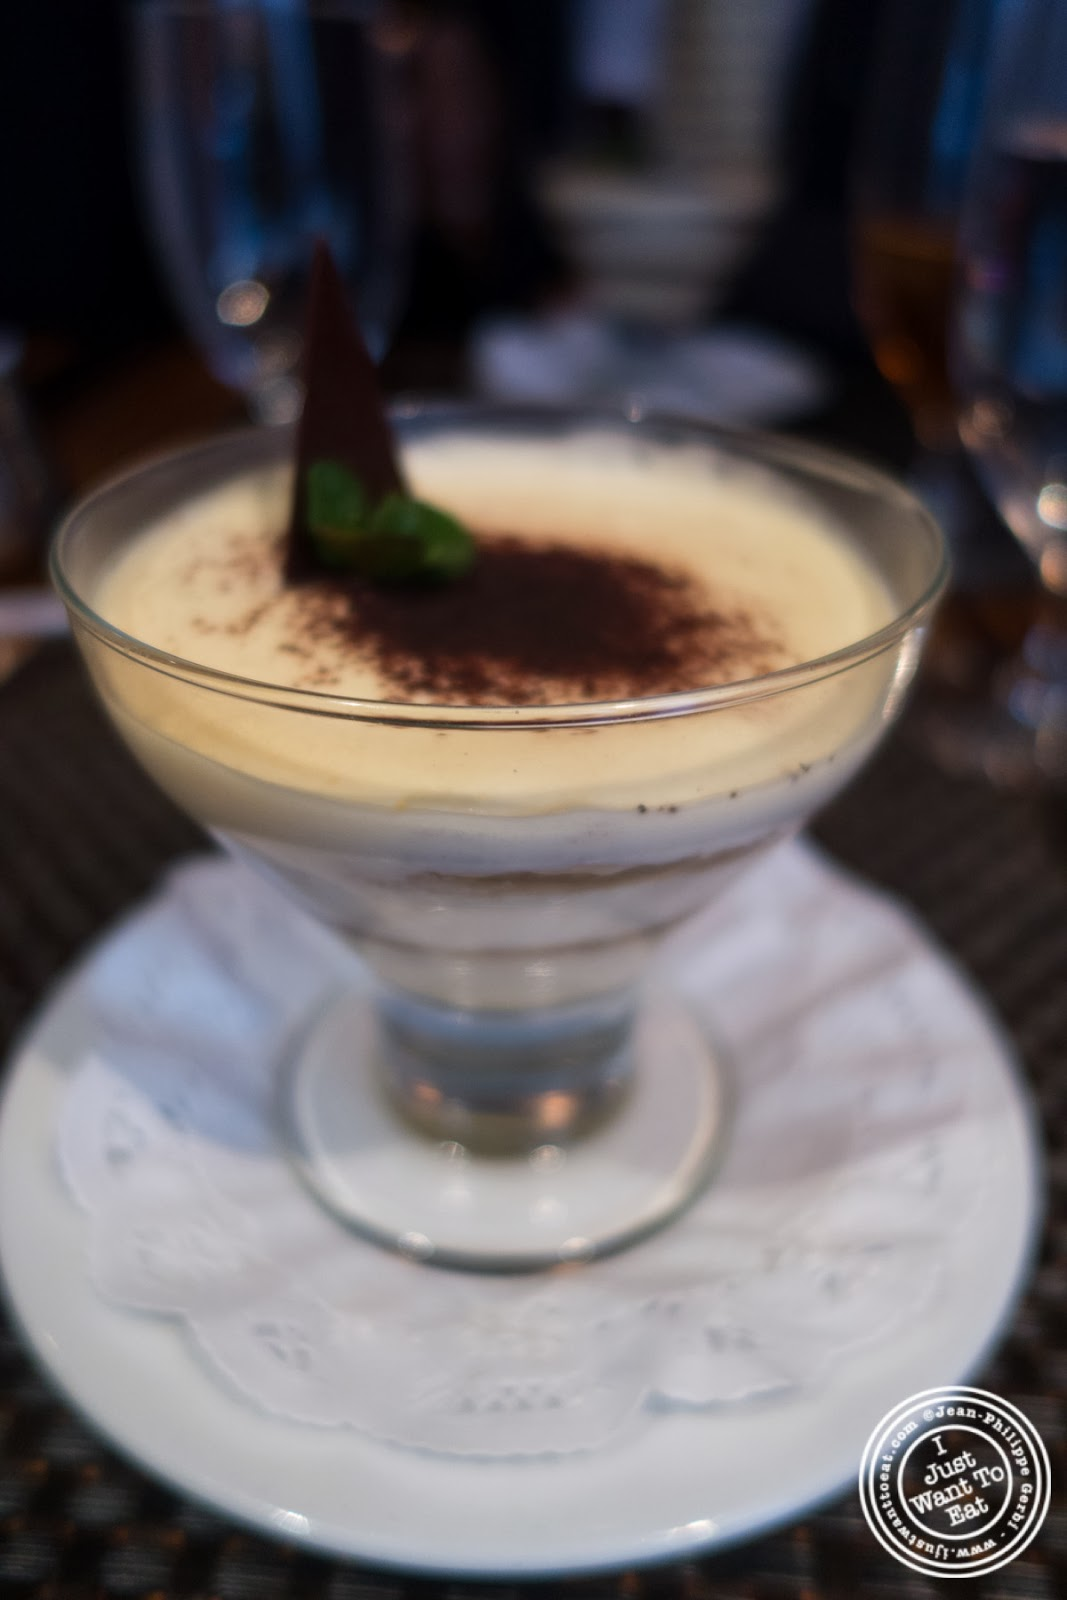 image of tiramisu at Abboccato Italian restaurant in NYC, New York